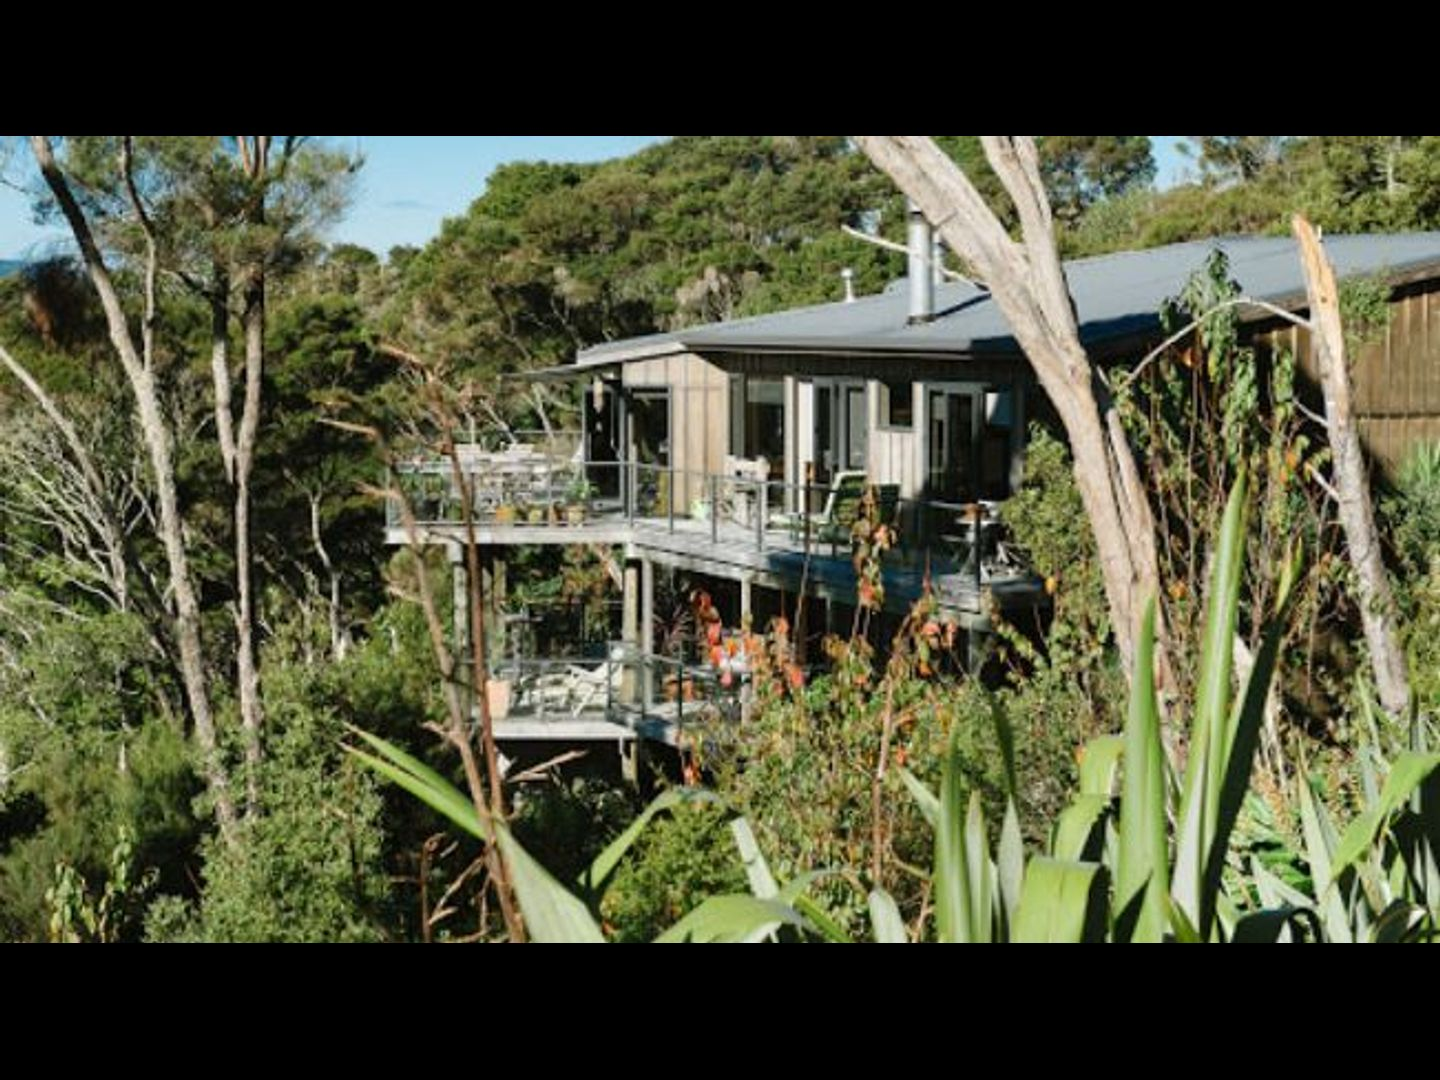 A house with bushes in the background at The Sanctuary at Bay of Islands Lodge.